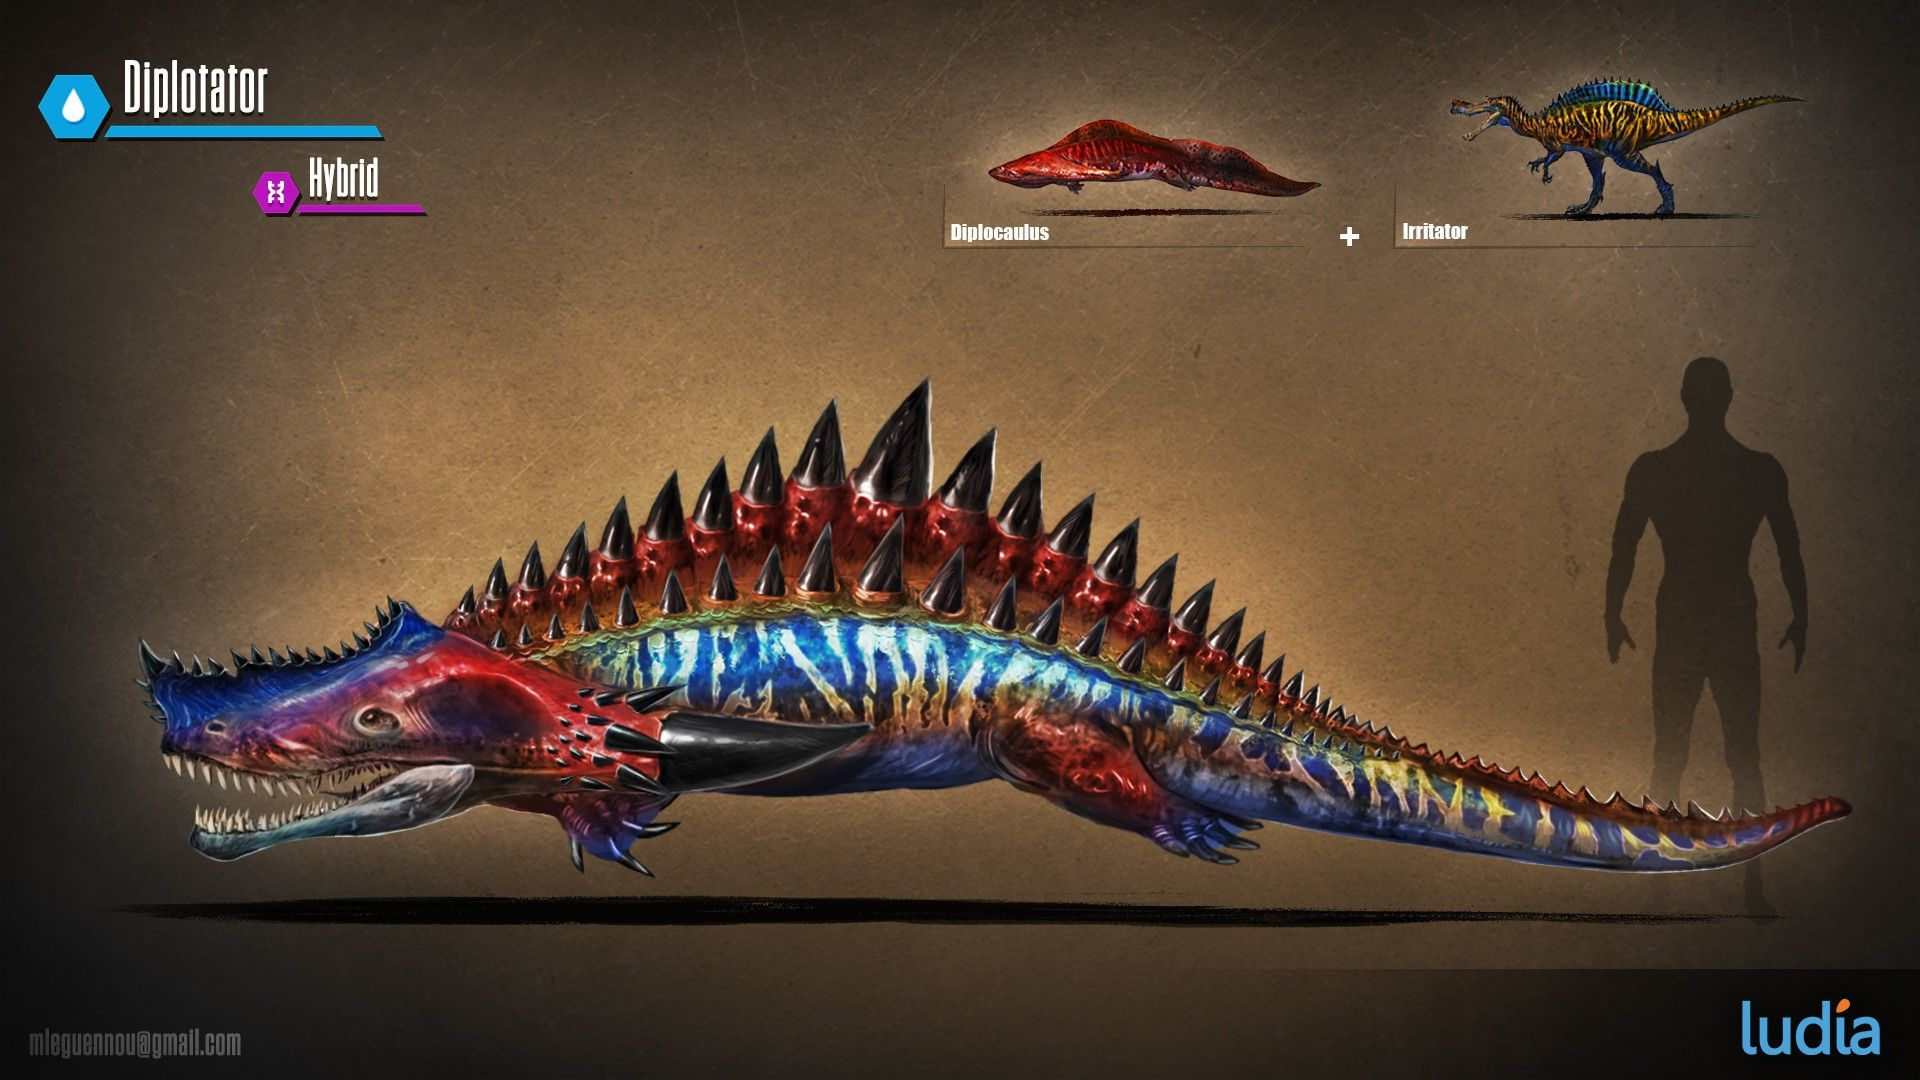 Pin by Jessica Abito on Dinosaurs and prehistoric animals in